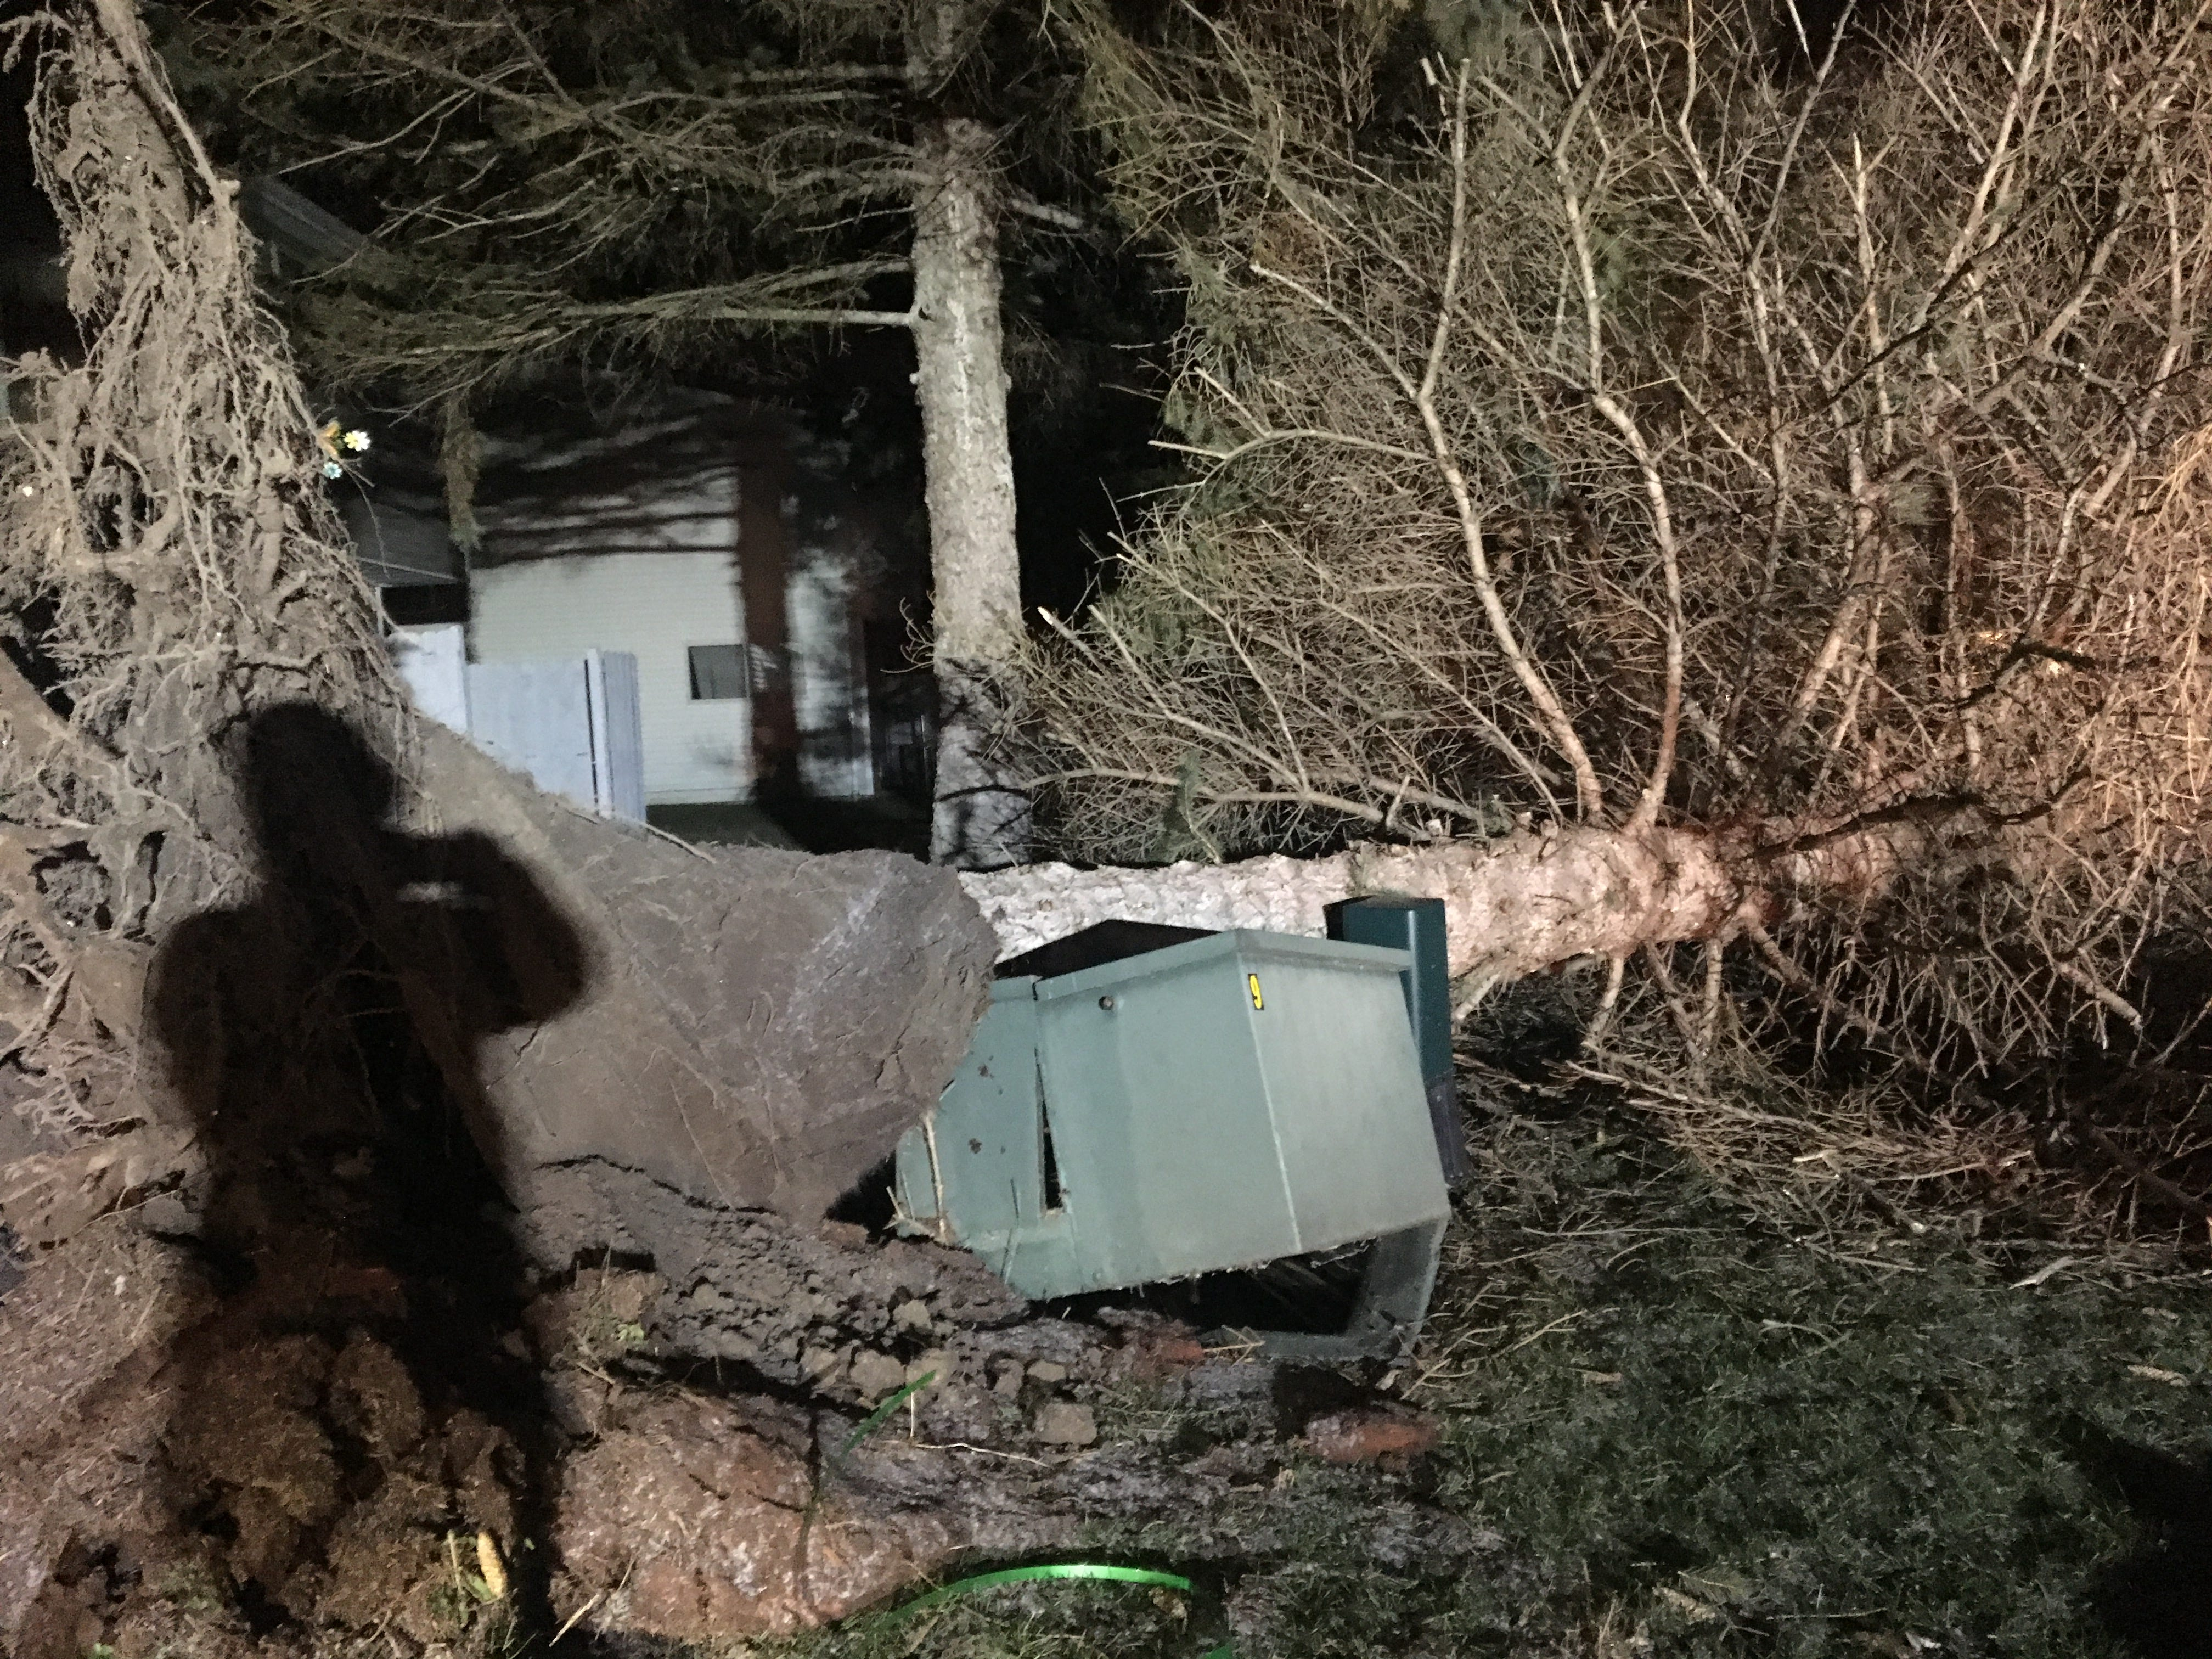 A pine tree landed on a transformer on Powers Lane in Chili on Feb. 24, 2019.